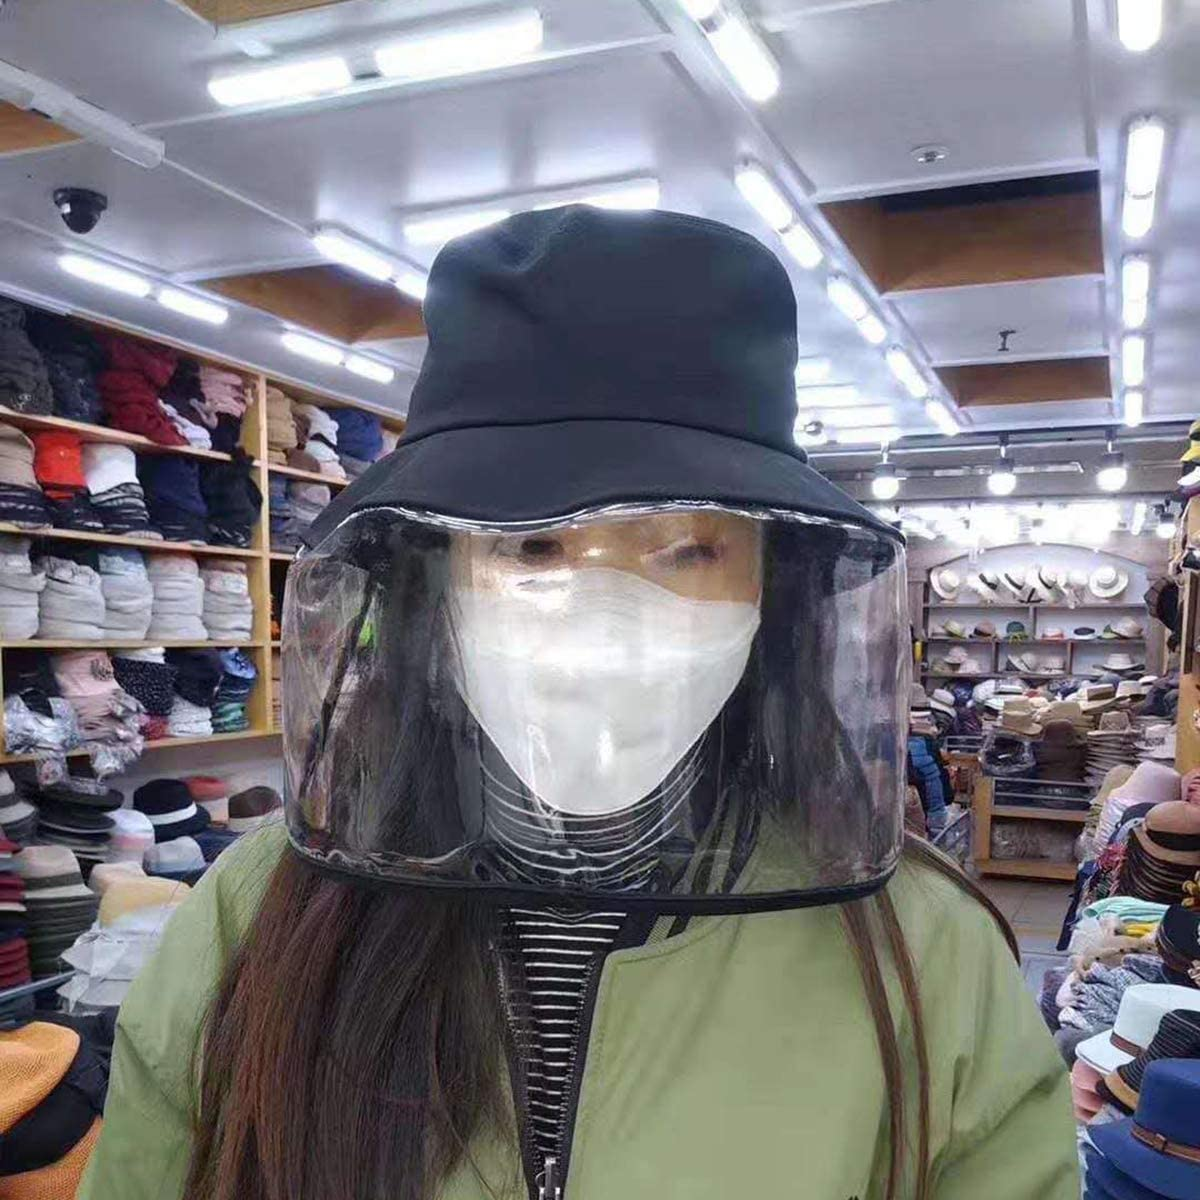 DaMohony Unisex UV Protection Bucket Hat with Face Shield Anti-Droplet Dustproof Anti Saliva Fog Hat Protection Fishing Cap Black